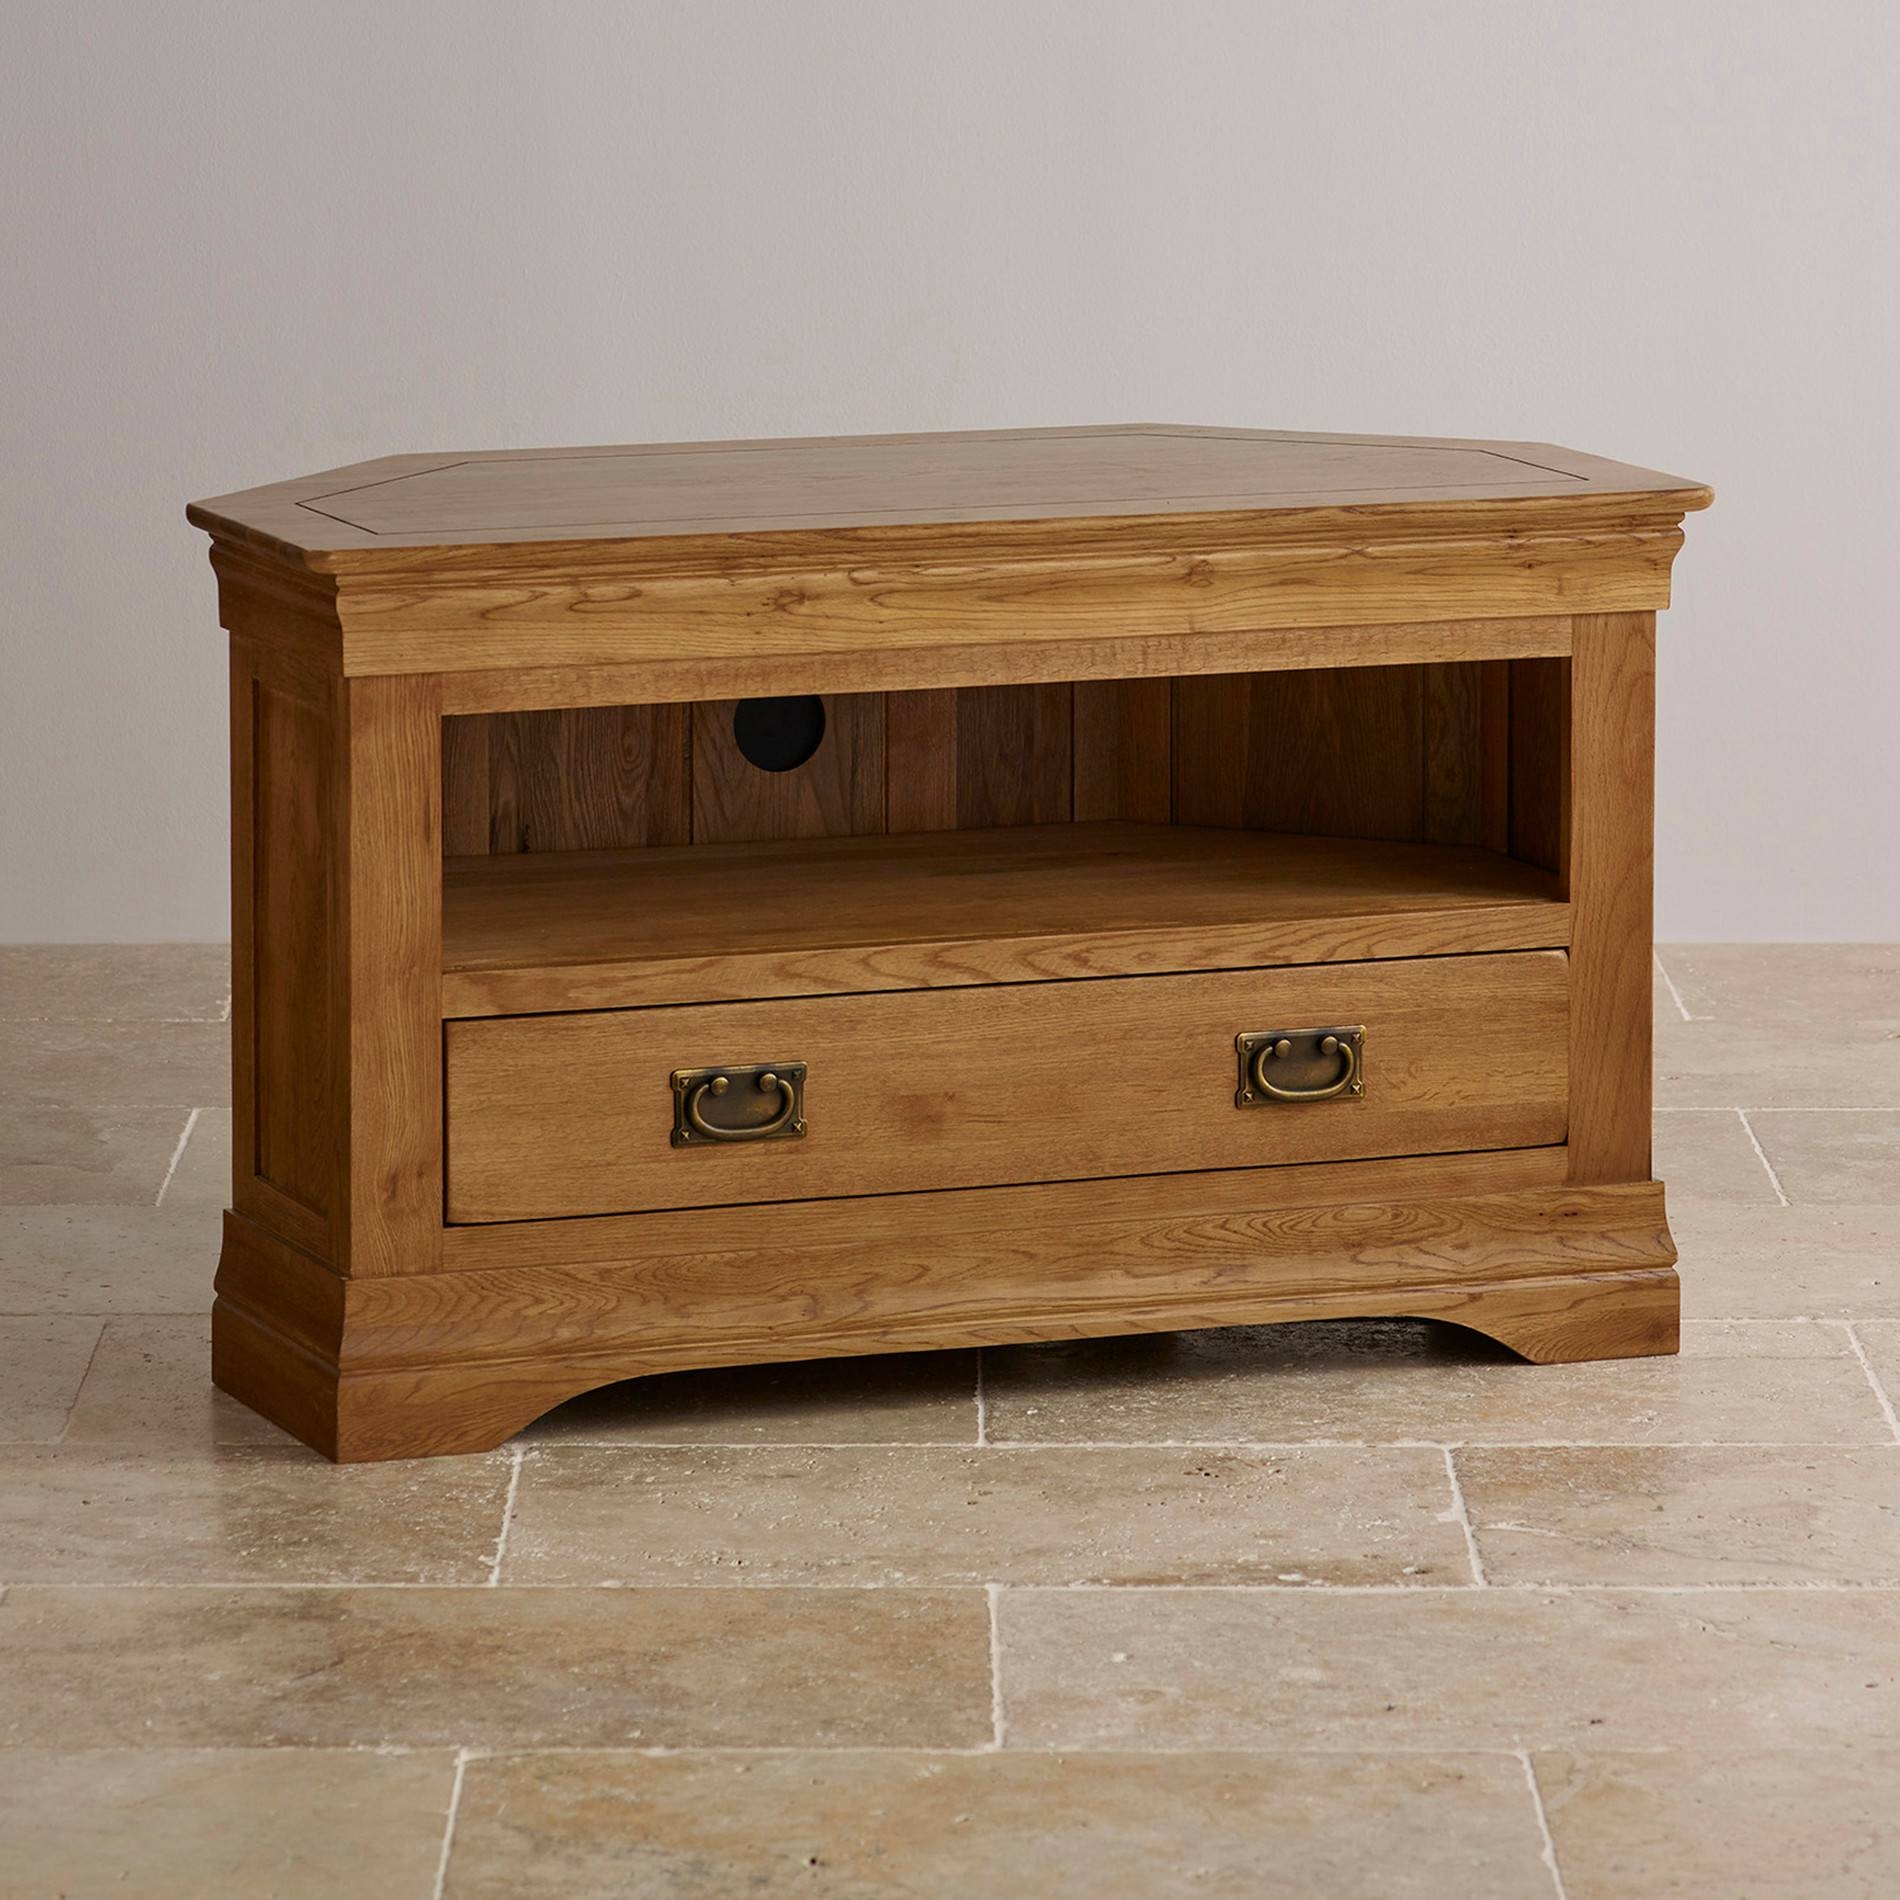 French Farmhouse Corner Tv Unit | Solid Oak | Oak Furniture Land inside Rustic Corner Tv Stands (Image 5 of 15)